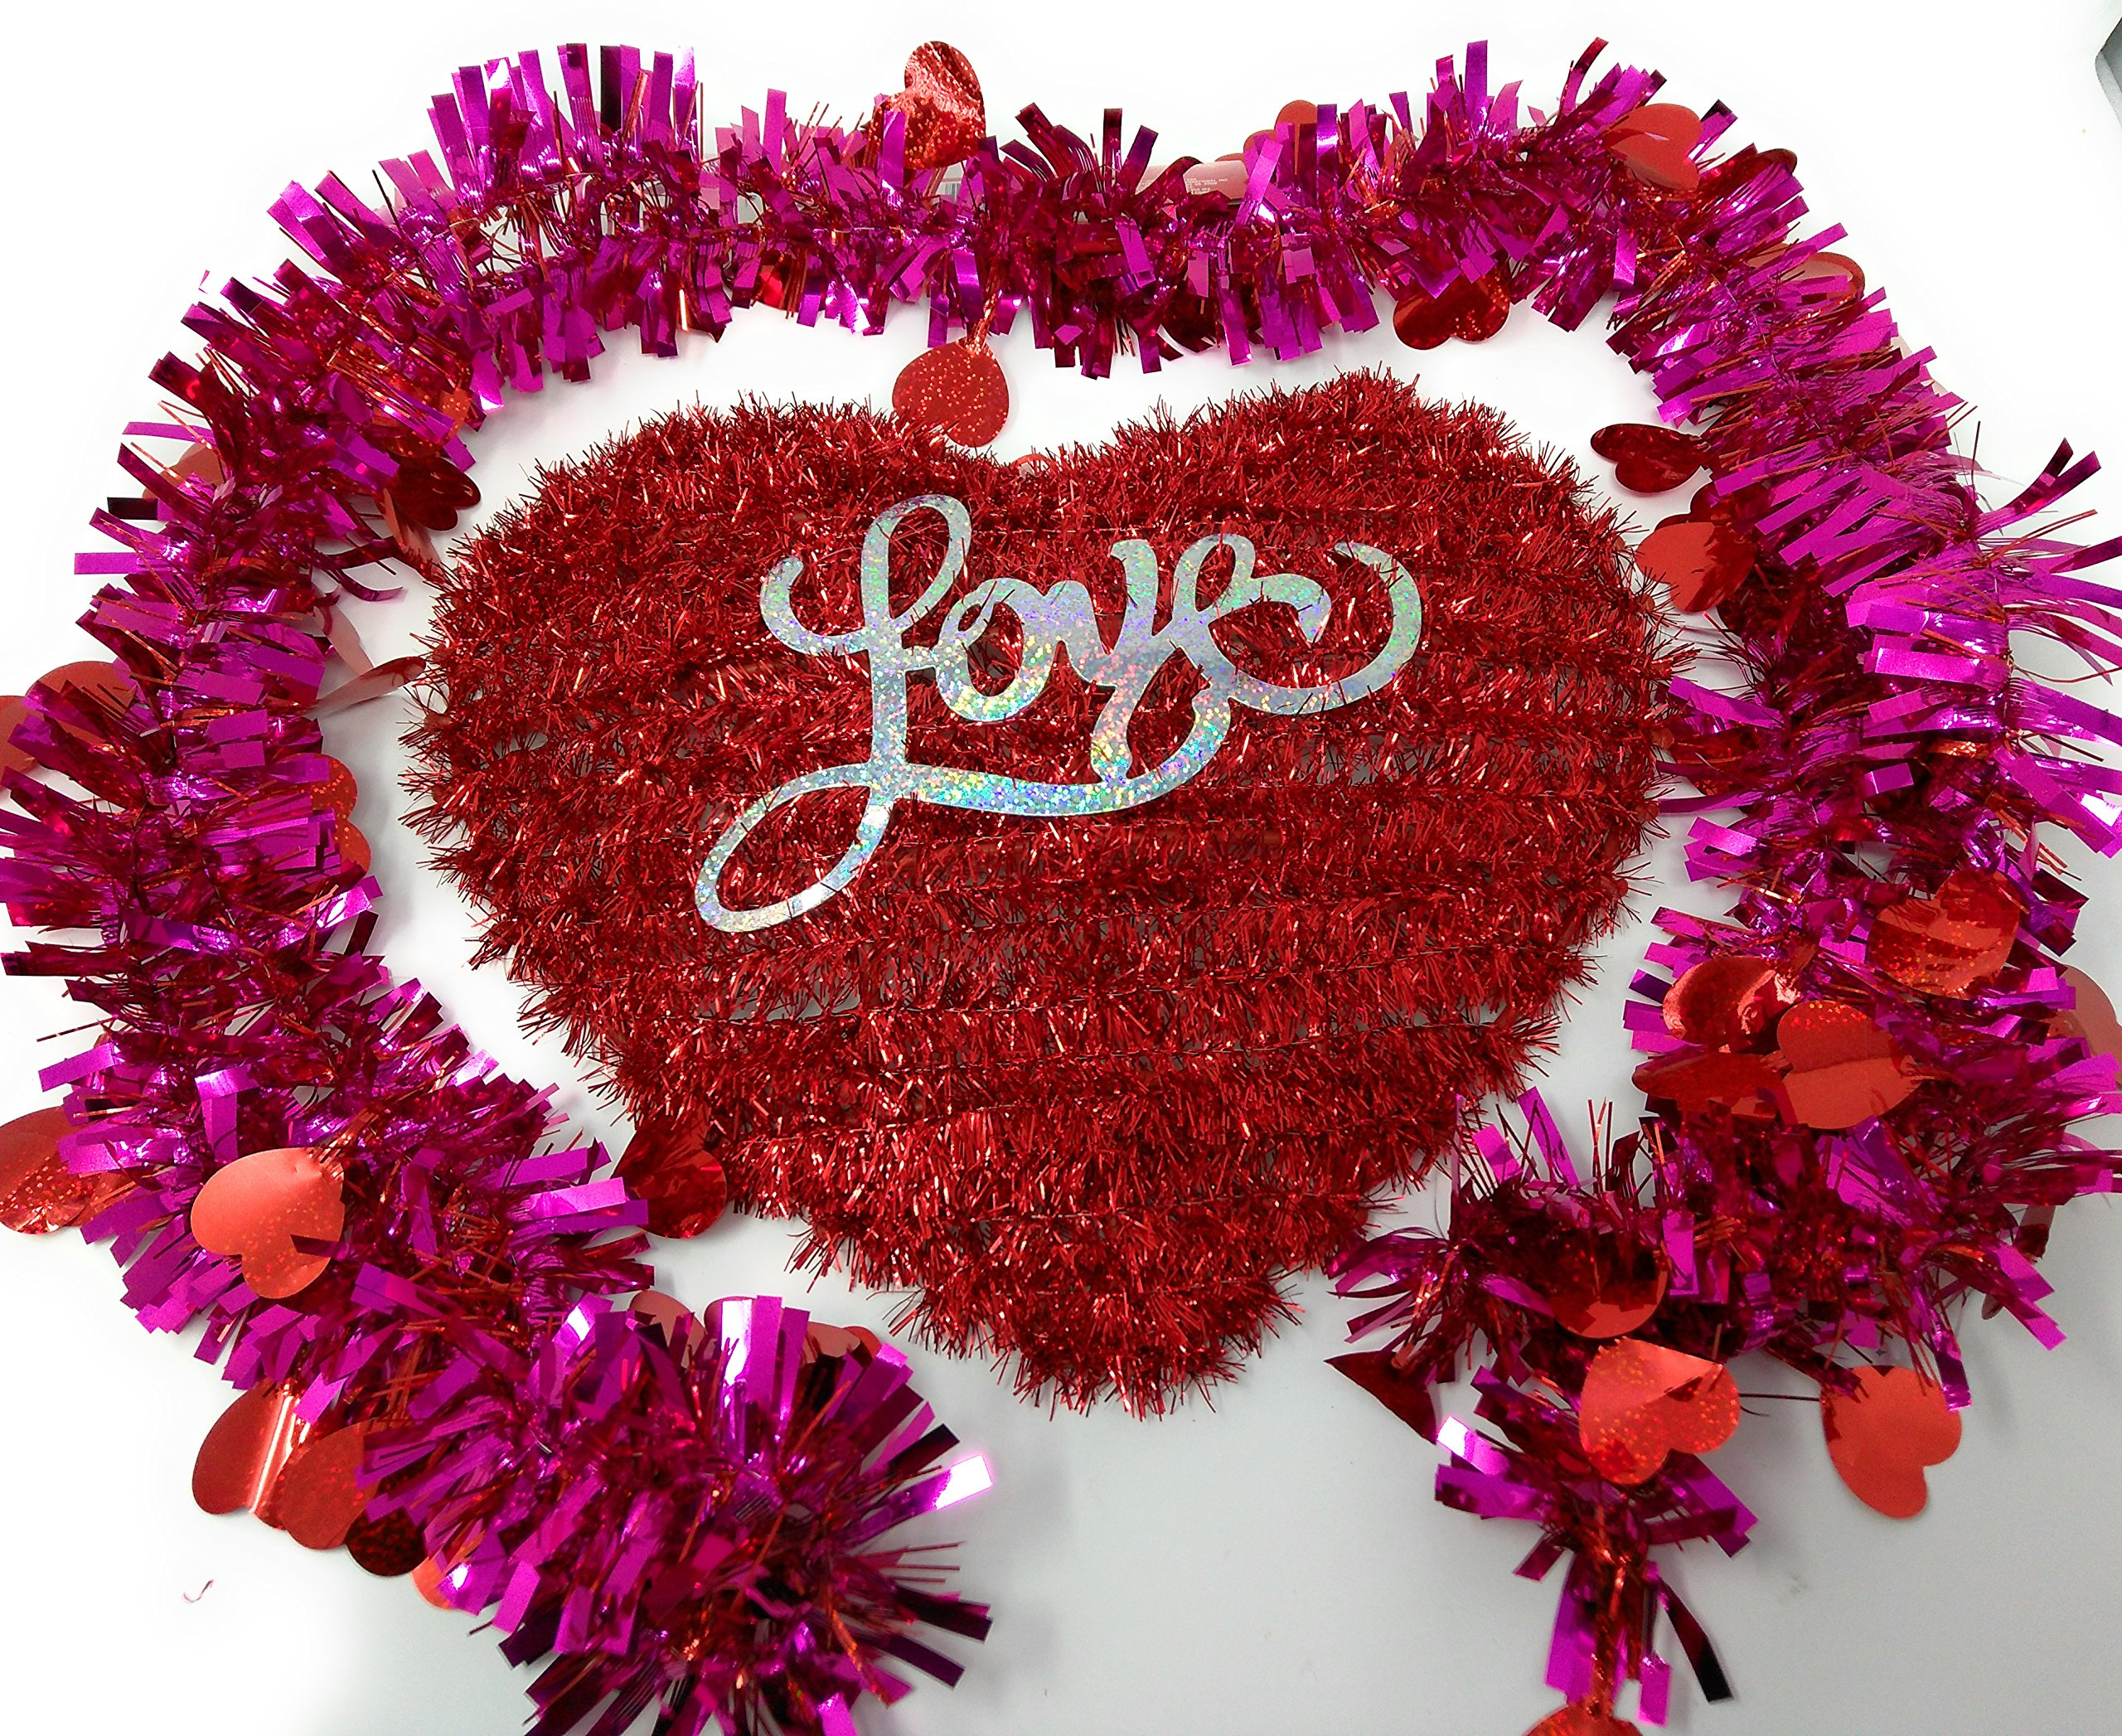 Happy Valentine's Day Wall Plaques Home Decor Decoration Decorations Tinsel Heart Love with Tinsel Garland, 9-ft. Strands